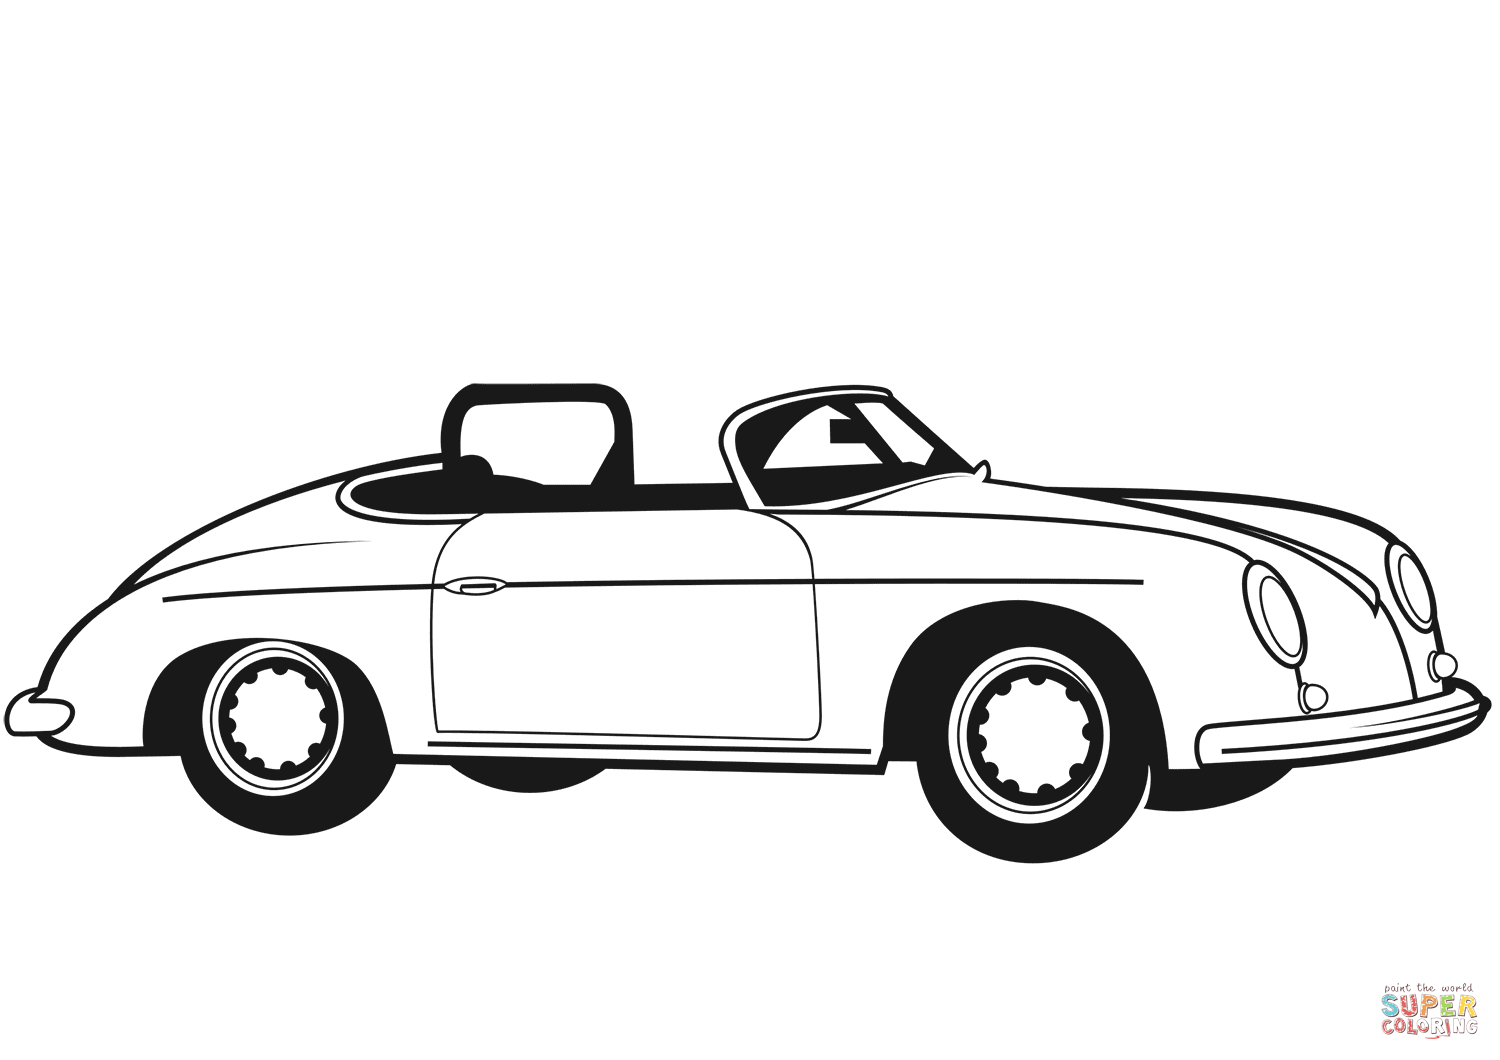 Old Cars Coloring Pages  to Print 20r - Save it to your computer